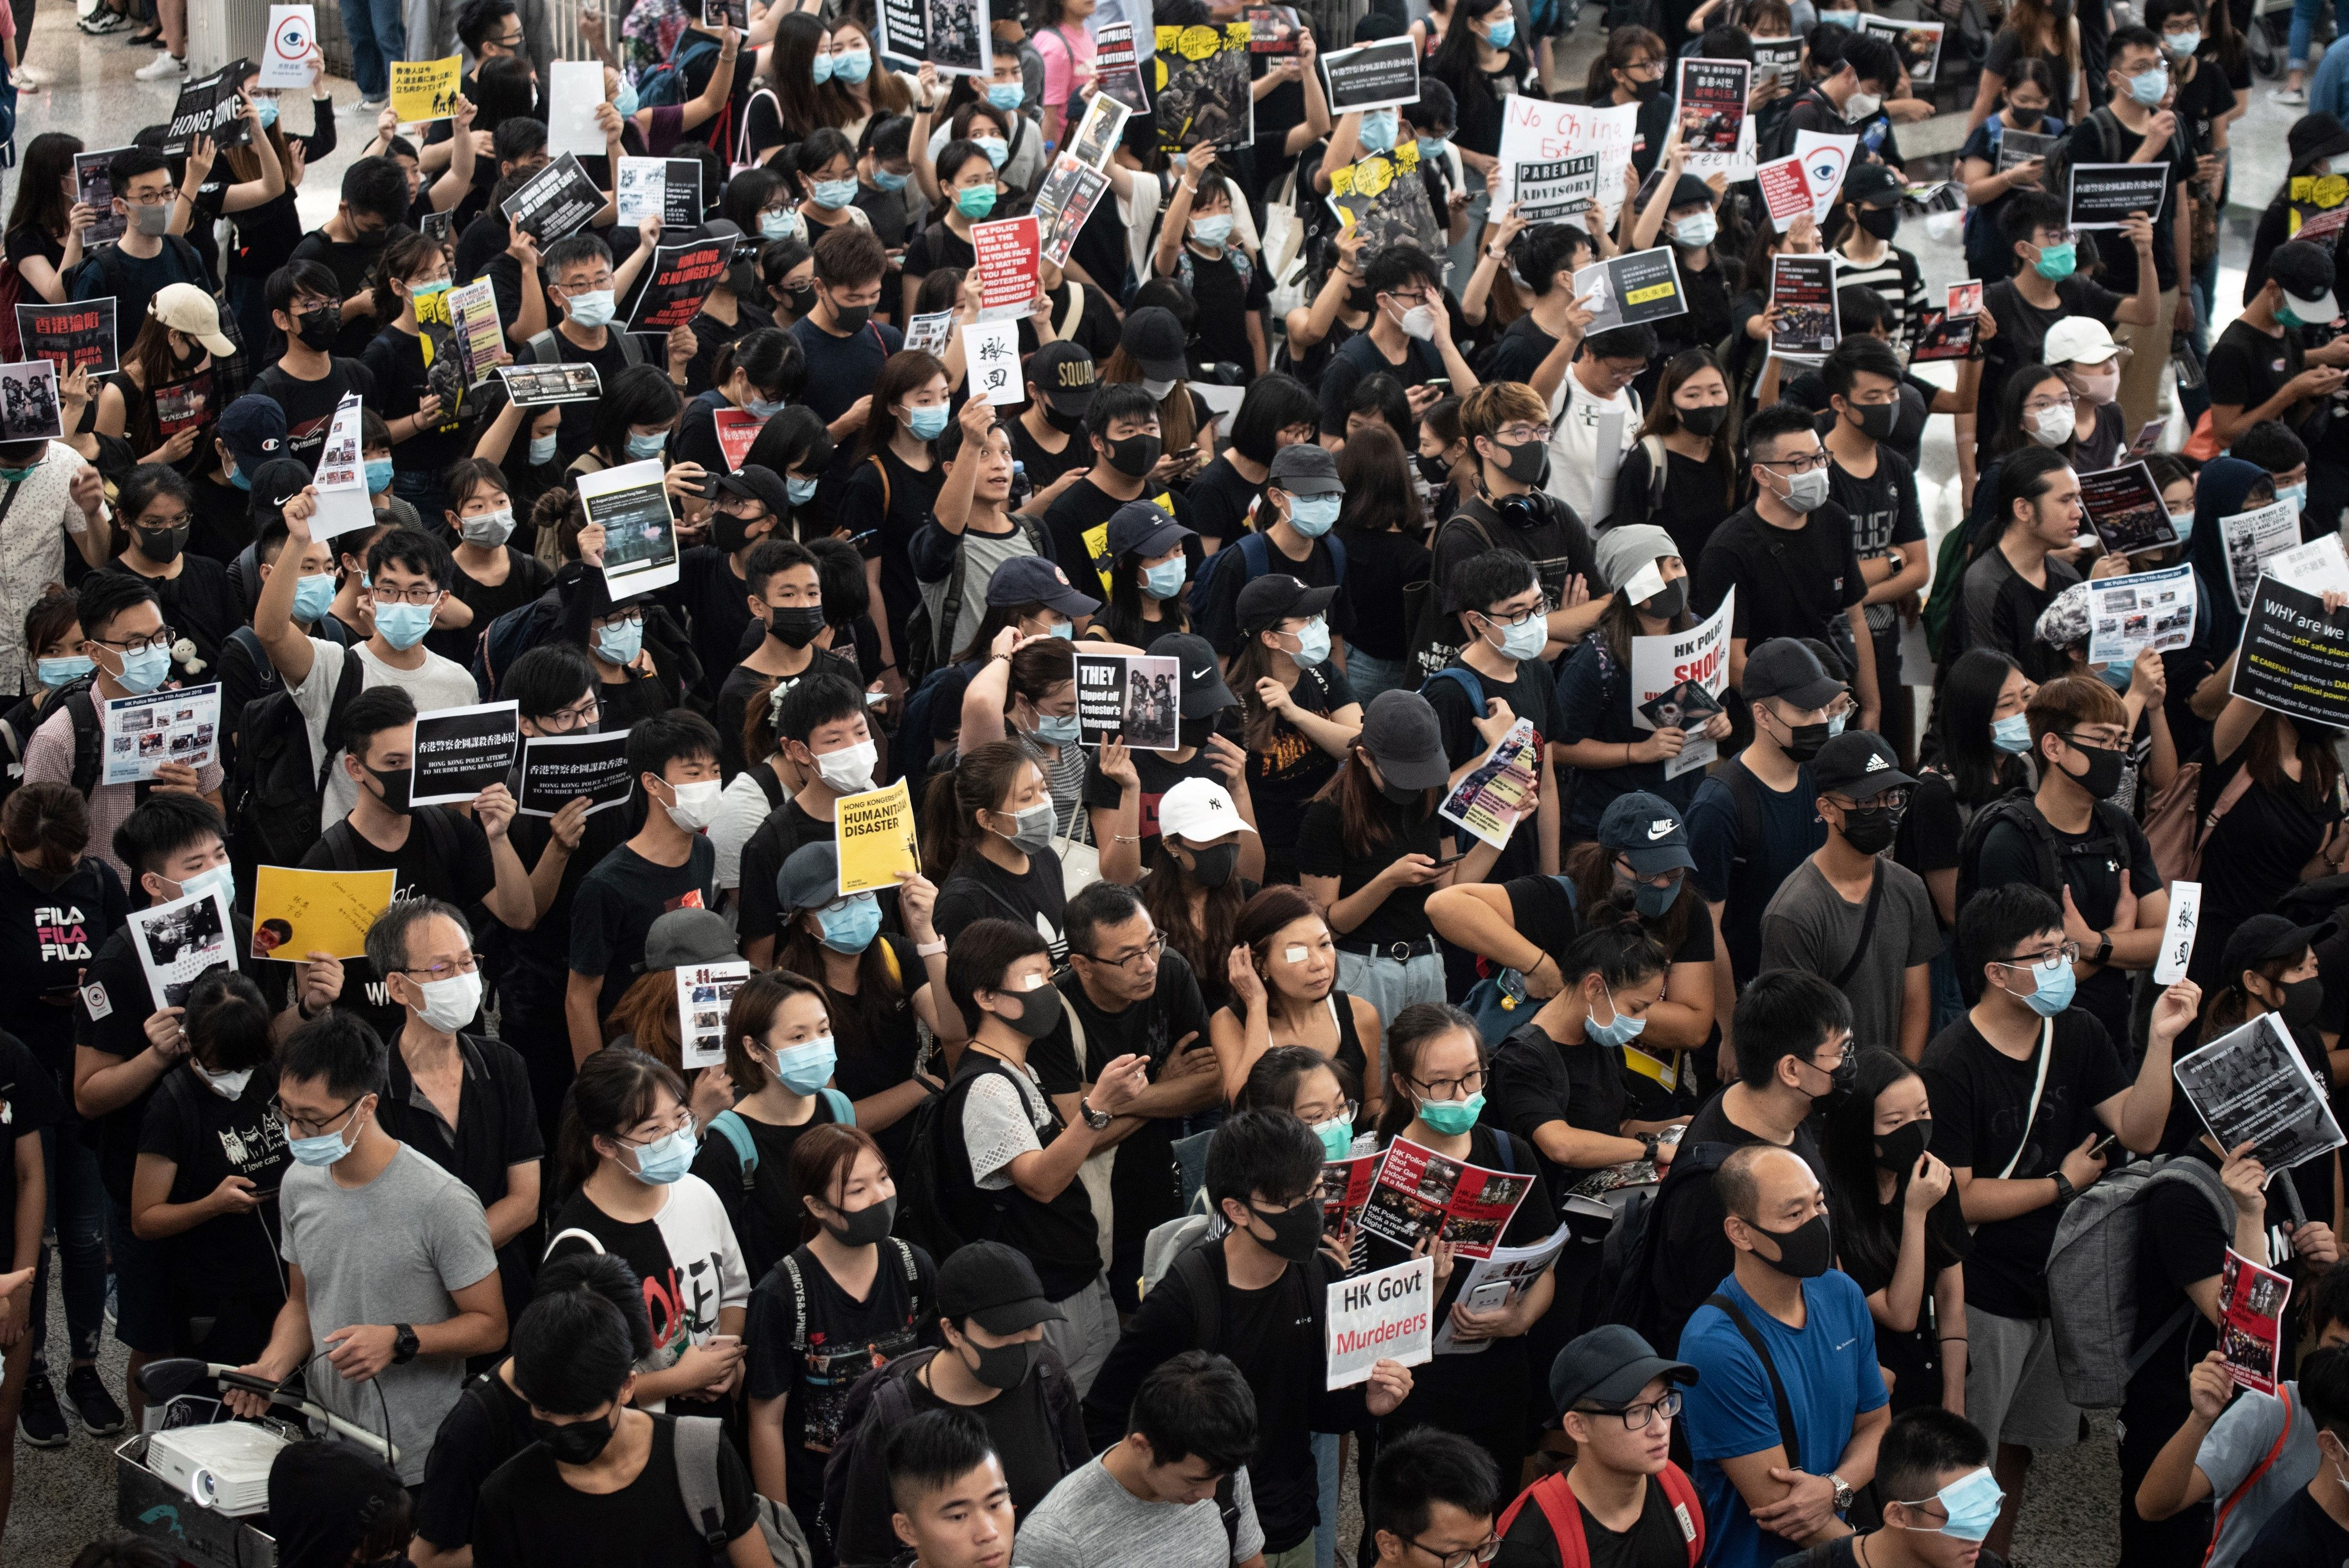 Pro-democracy protesters occupy Hong Kong's international airport on August 13, 2019.